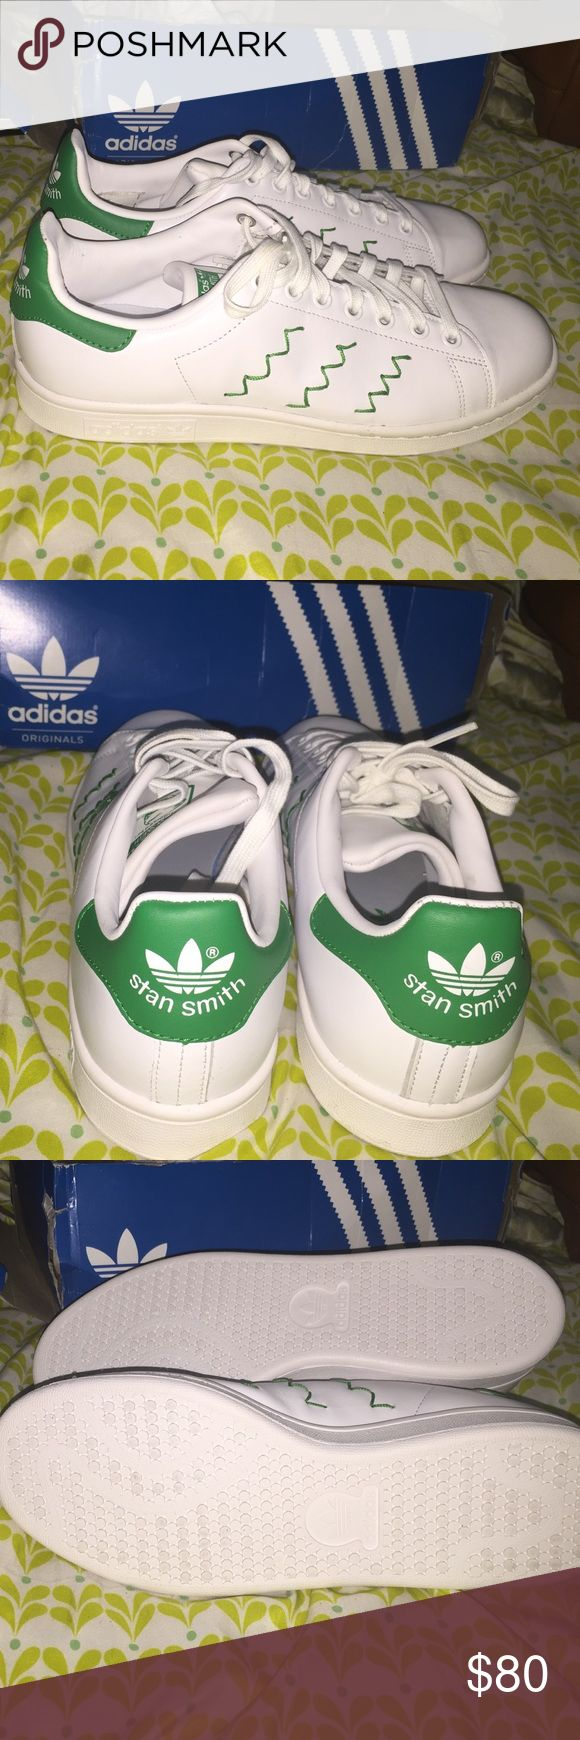 Adidas Stan Smith Sneakers Brand new Adidas Stan Smith Sneakers in box adidas Shoes Sneakers